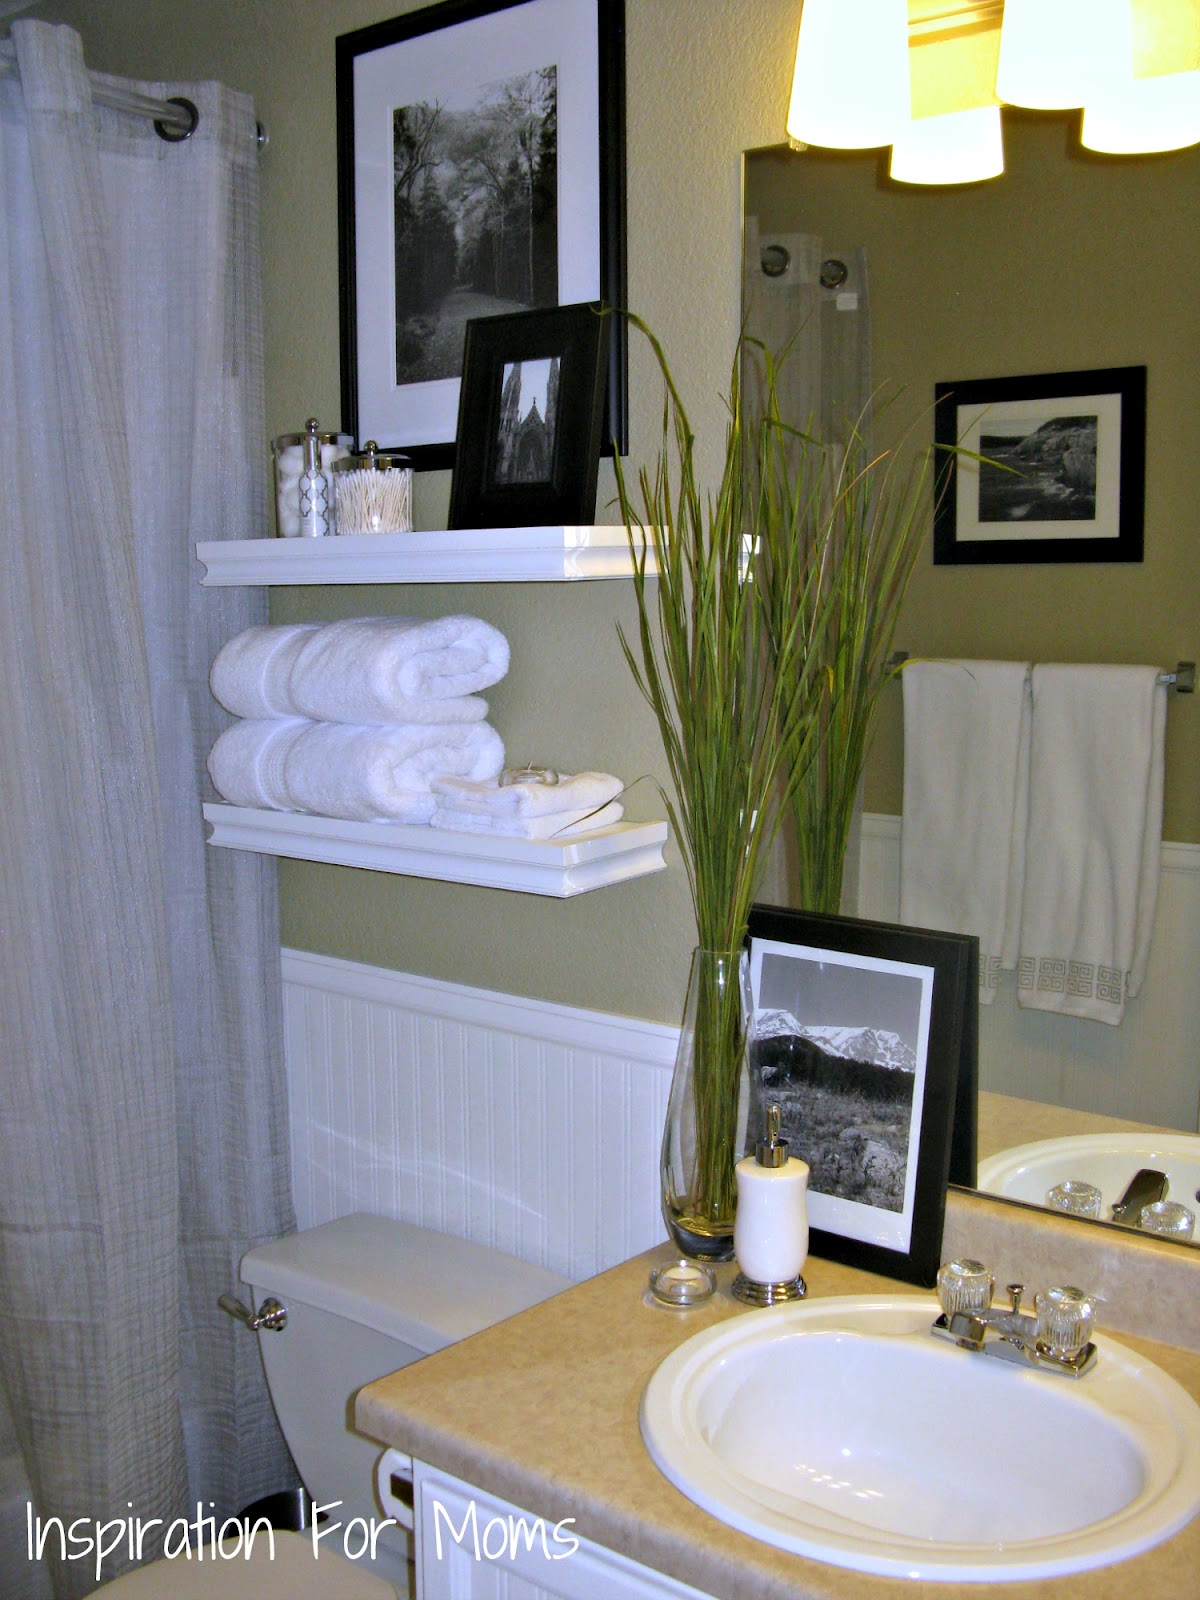 I finished it friday guest bathroom remodel inspiration for moms - Bathroom decorative ideas ...